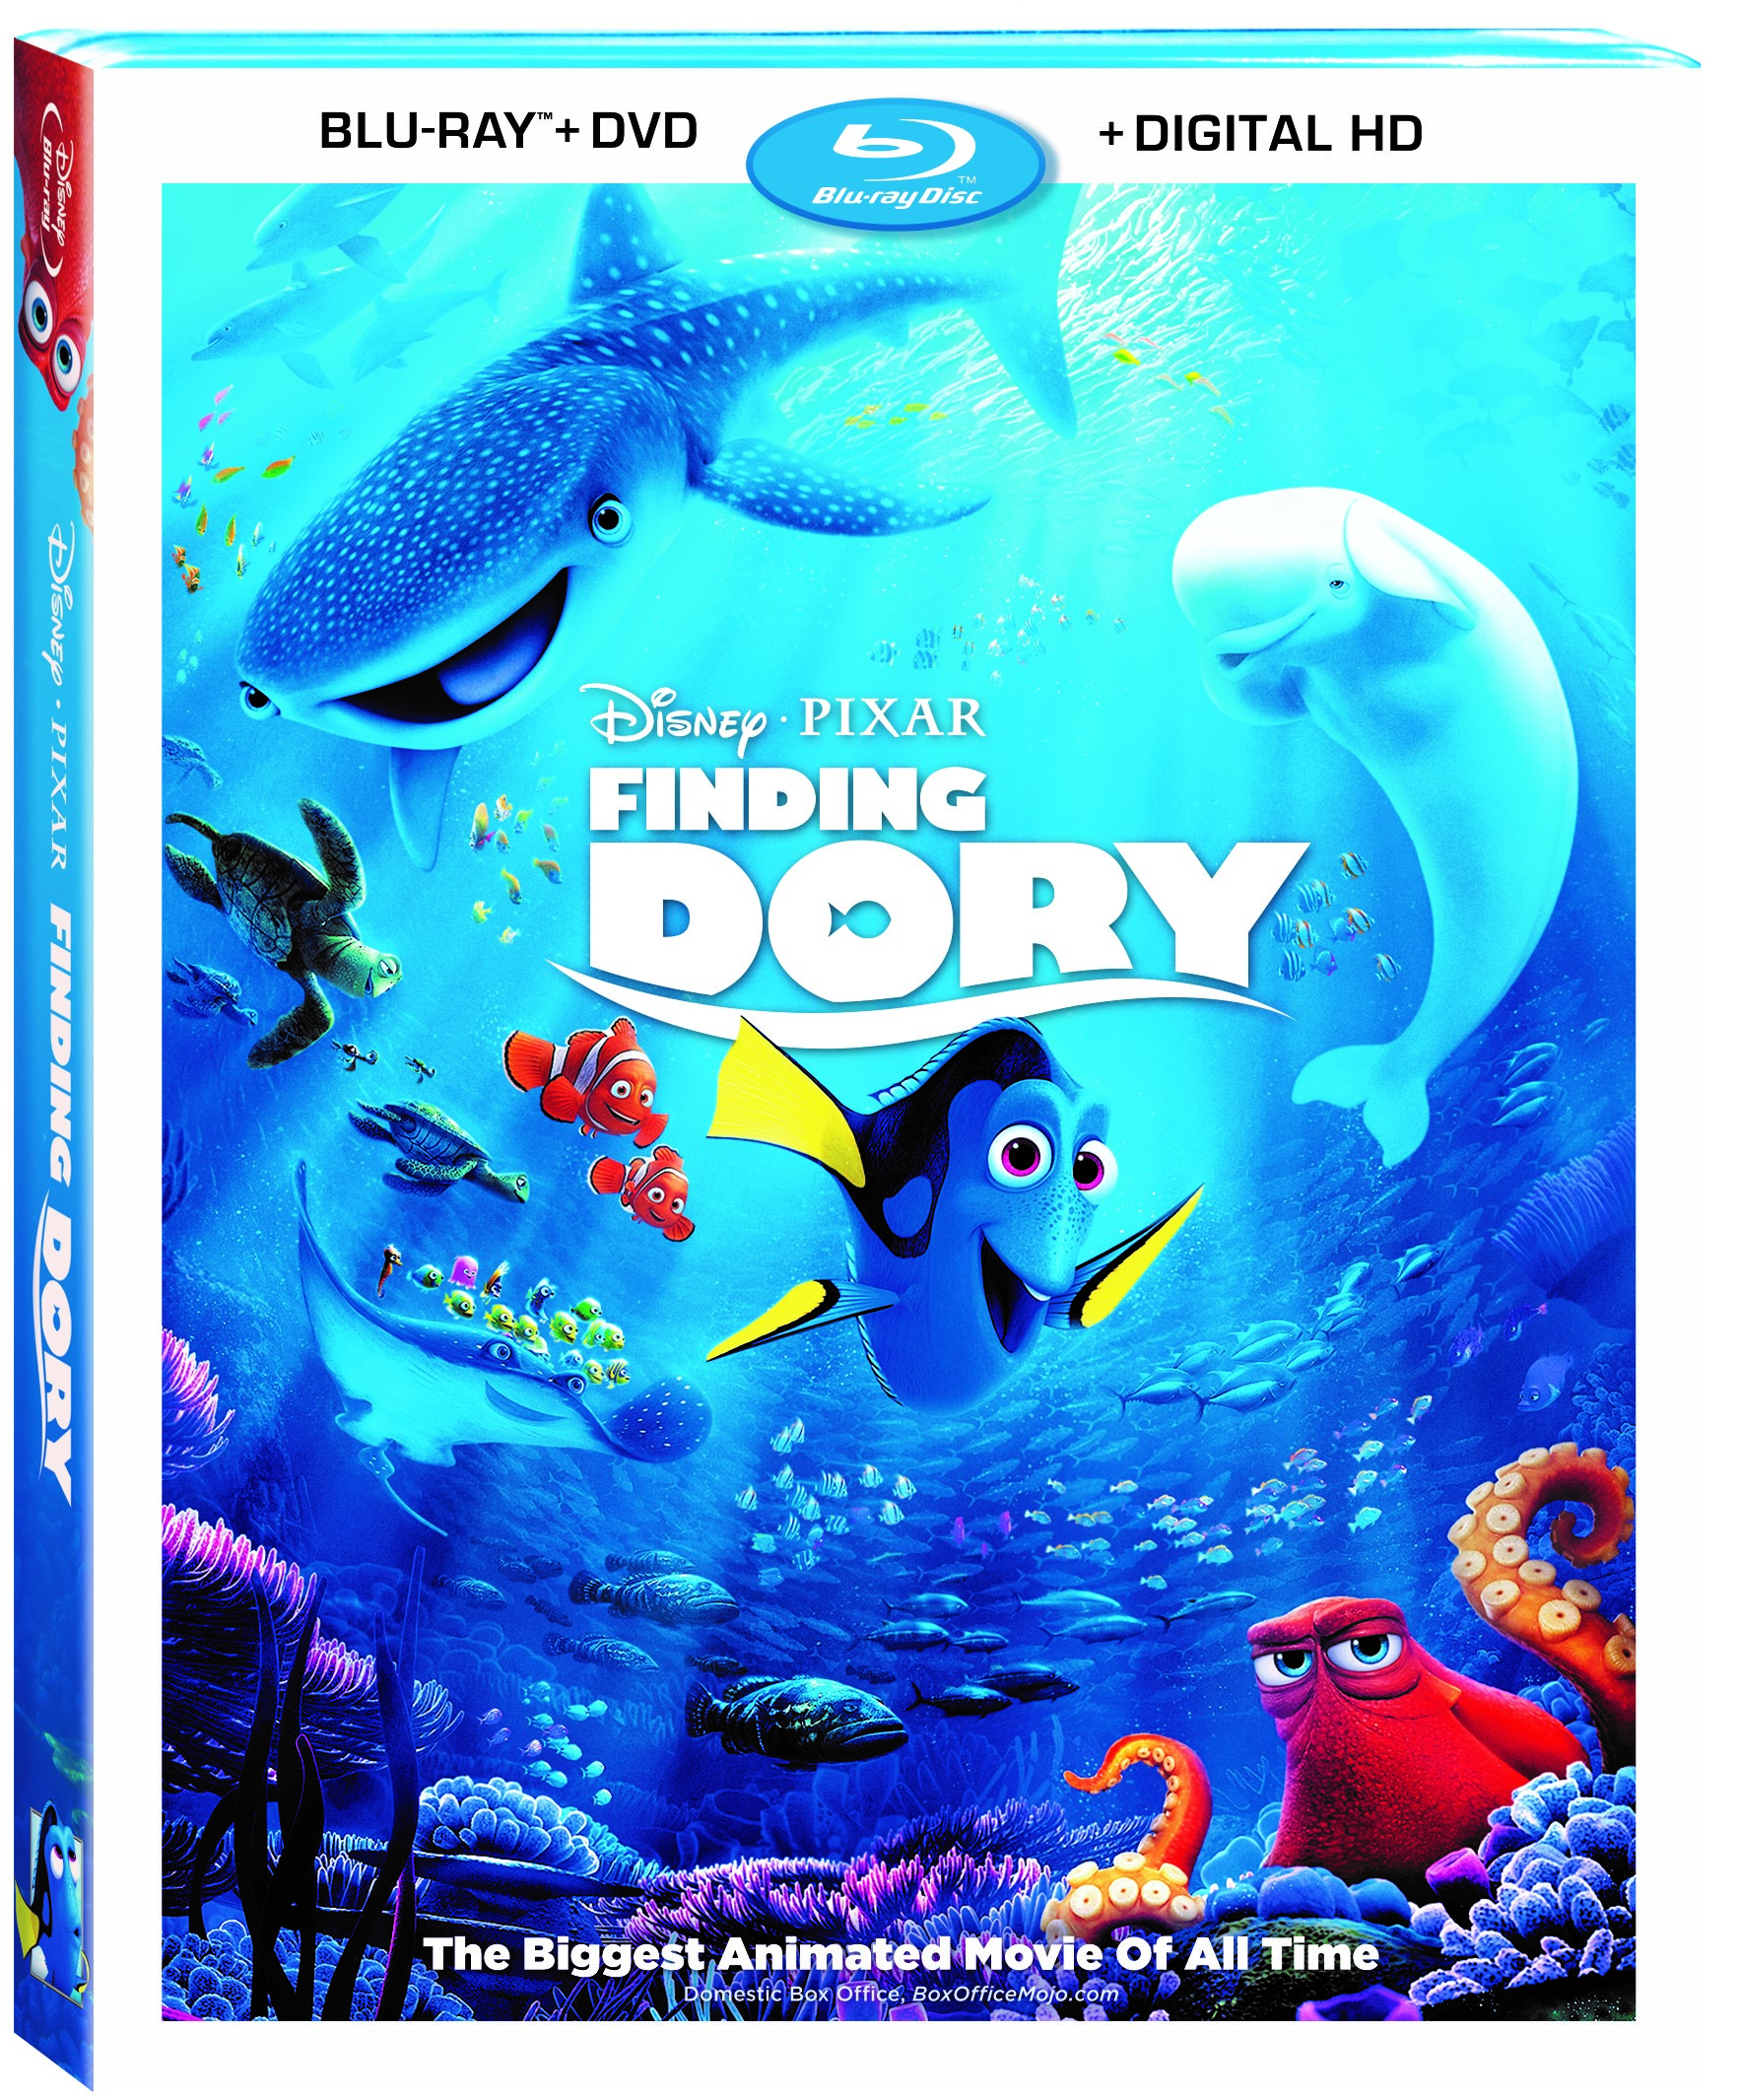 Finding Dory Bluray Combo, Available now on DVD!